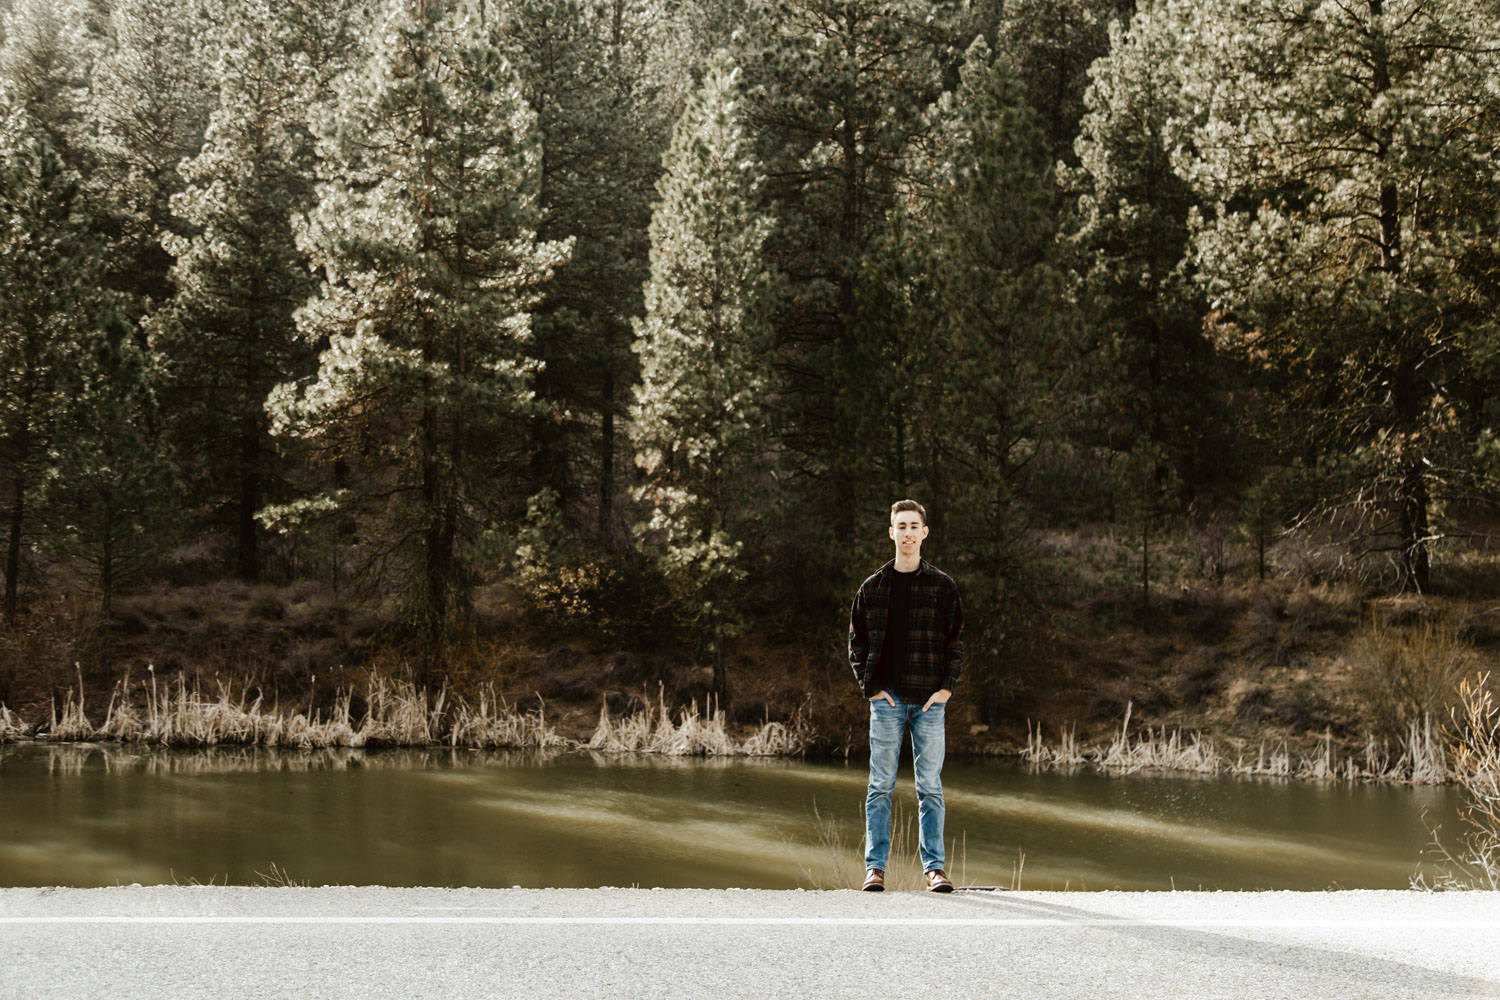 Boise Senior Photographer with Solomon in the Boise National Forest from Ridgeview High School.